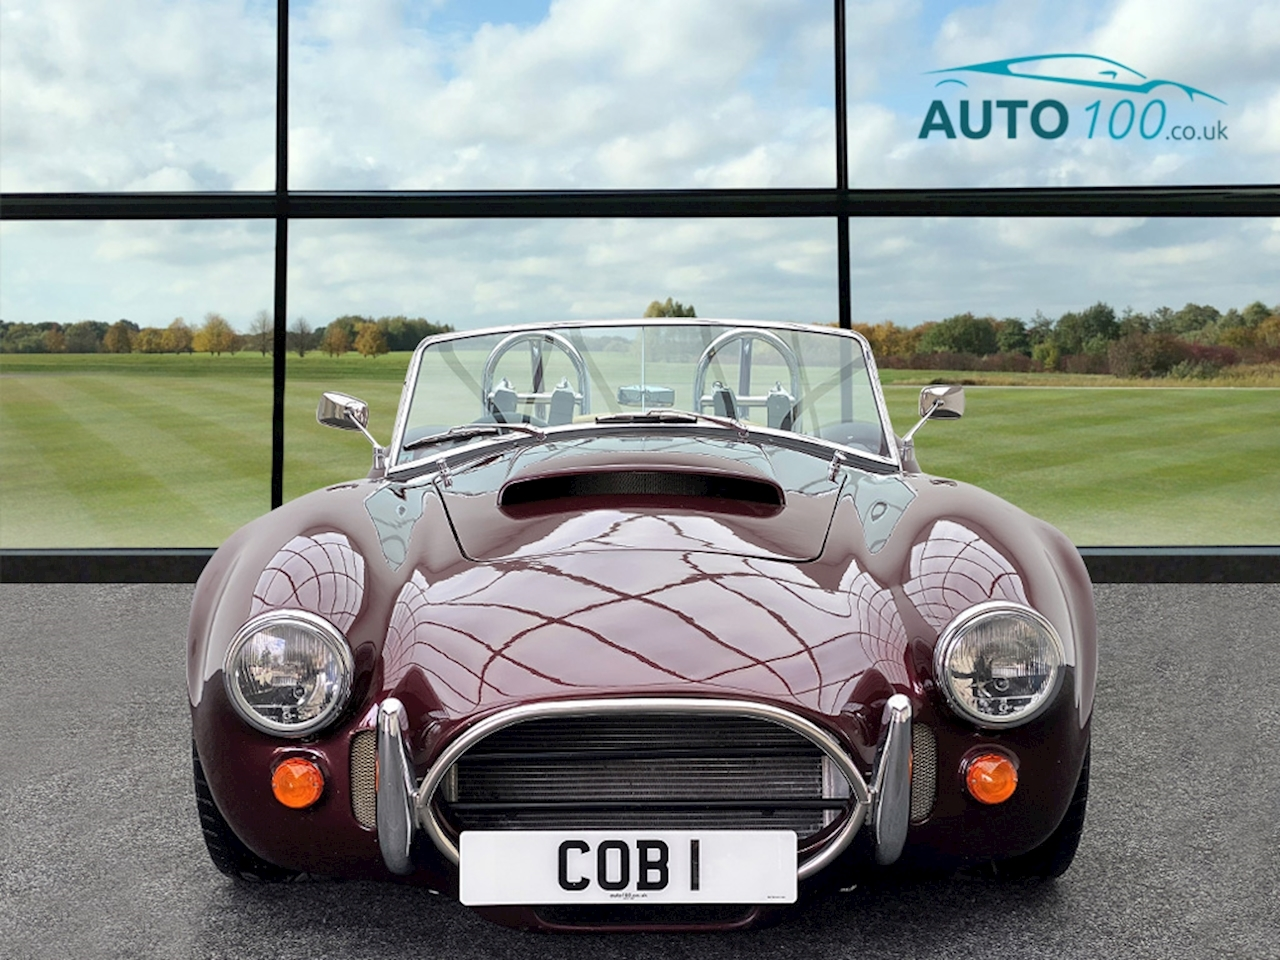 Dax AC Cobra 427 6.3 2dr Sports Petrol